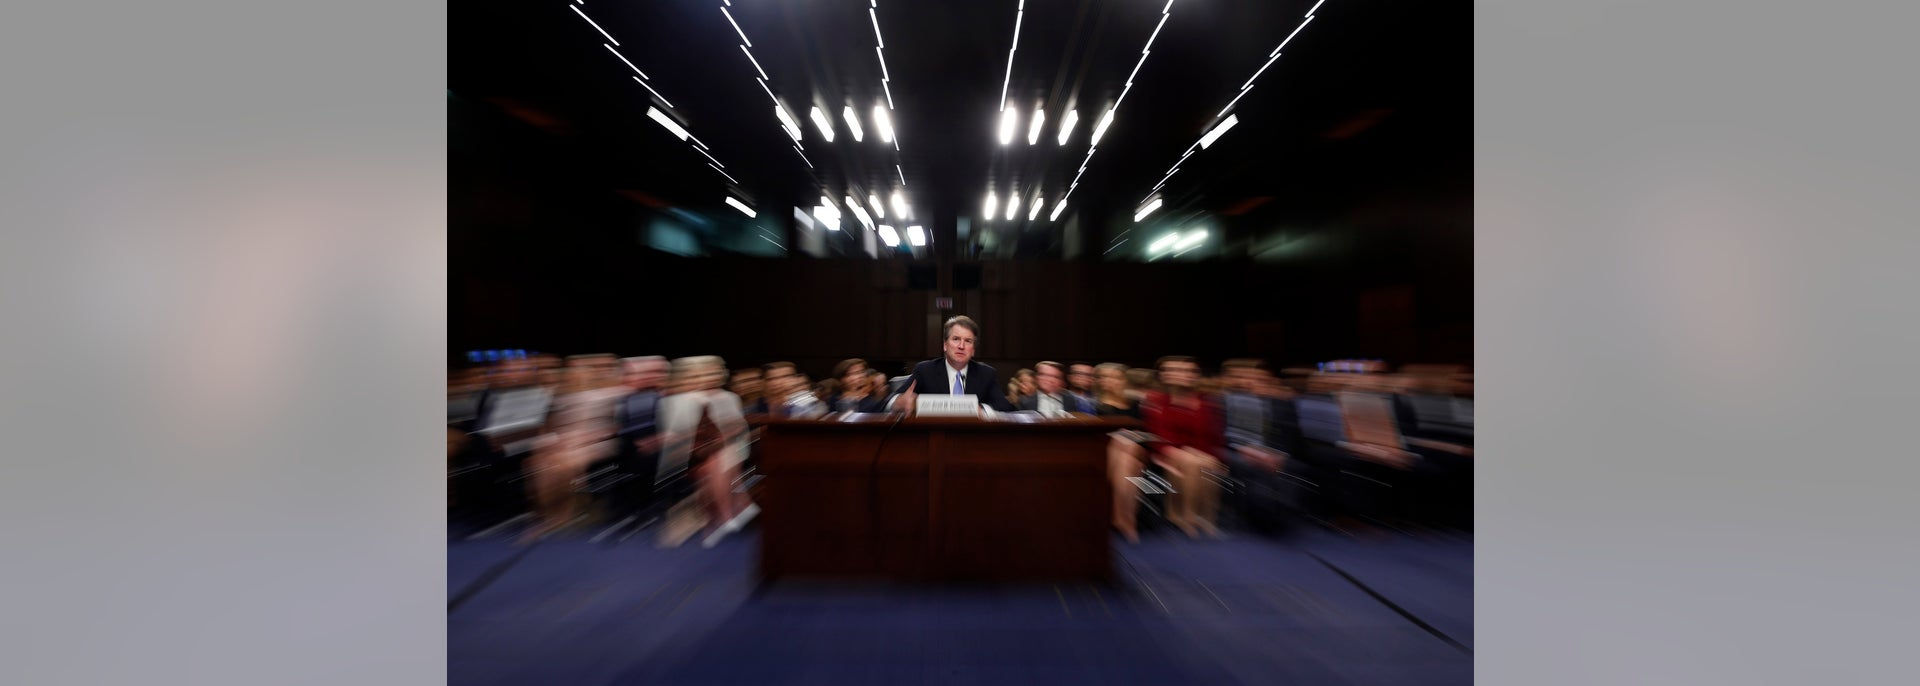 Kavanaugh Confirmation The Latest Developments On Charges By Watch And News In Senate Judiciary Committee A Slow Shutter Speed Zoom Lens President Donald Trumps Supreme Court Nominee Brett Testifies Before